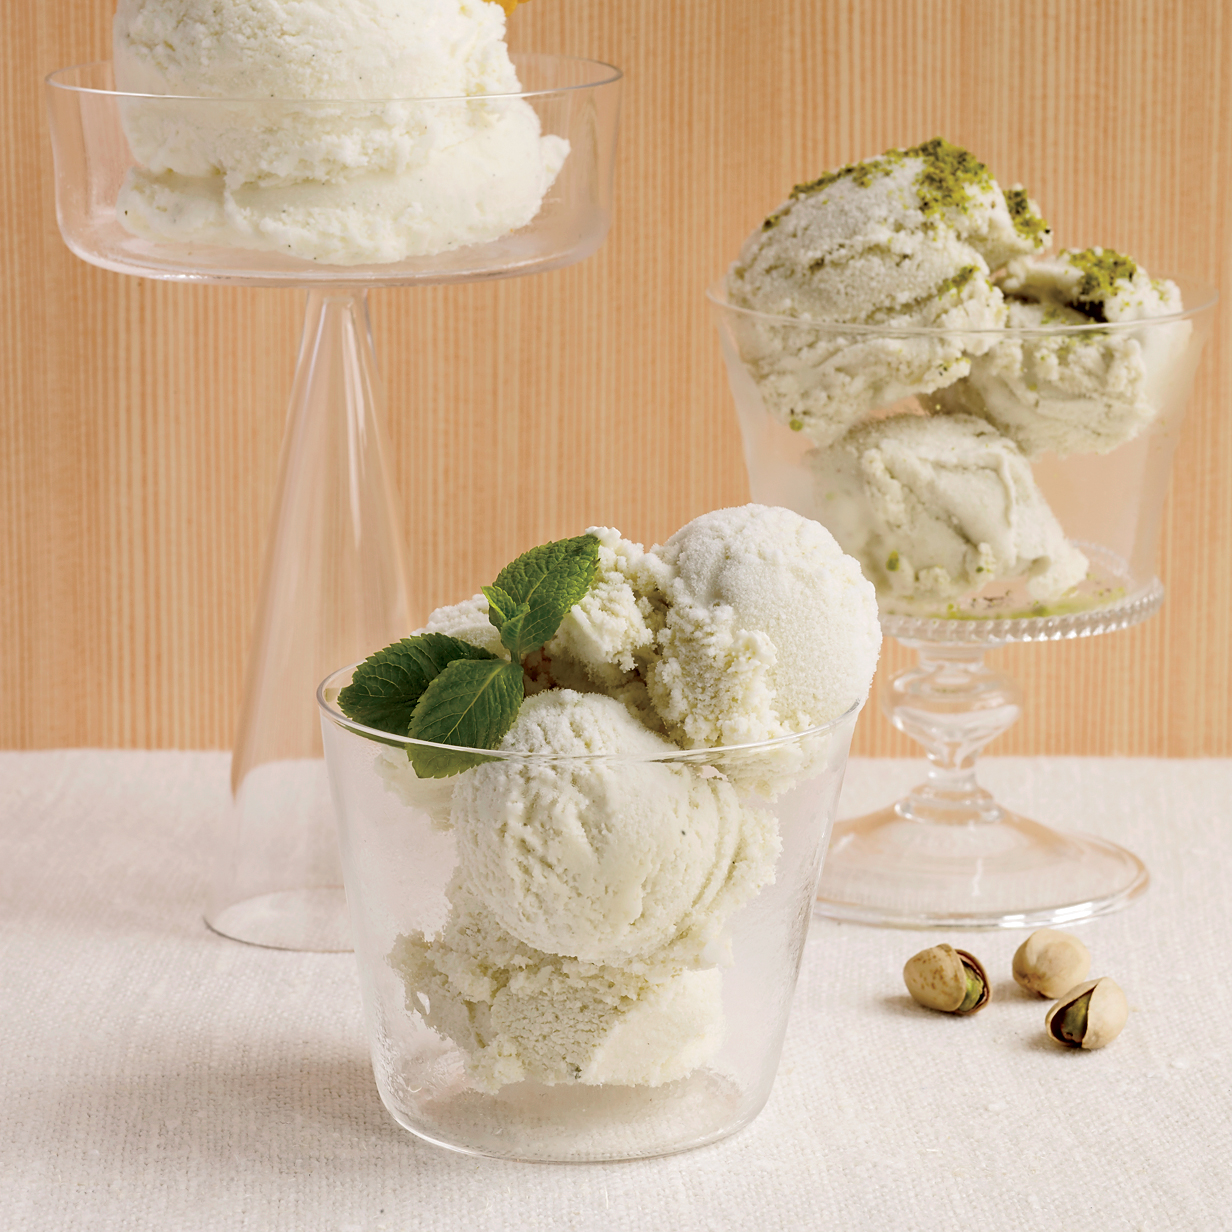 how to make mint ice cream at home